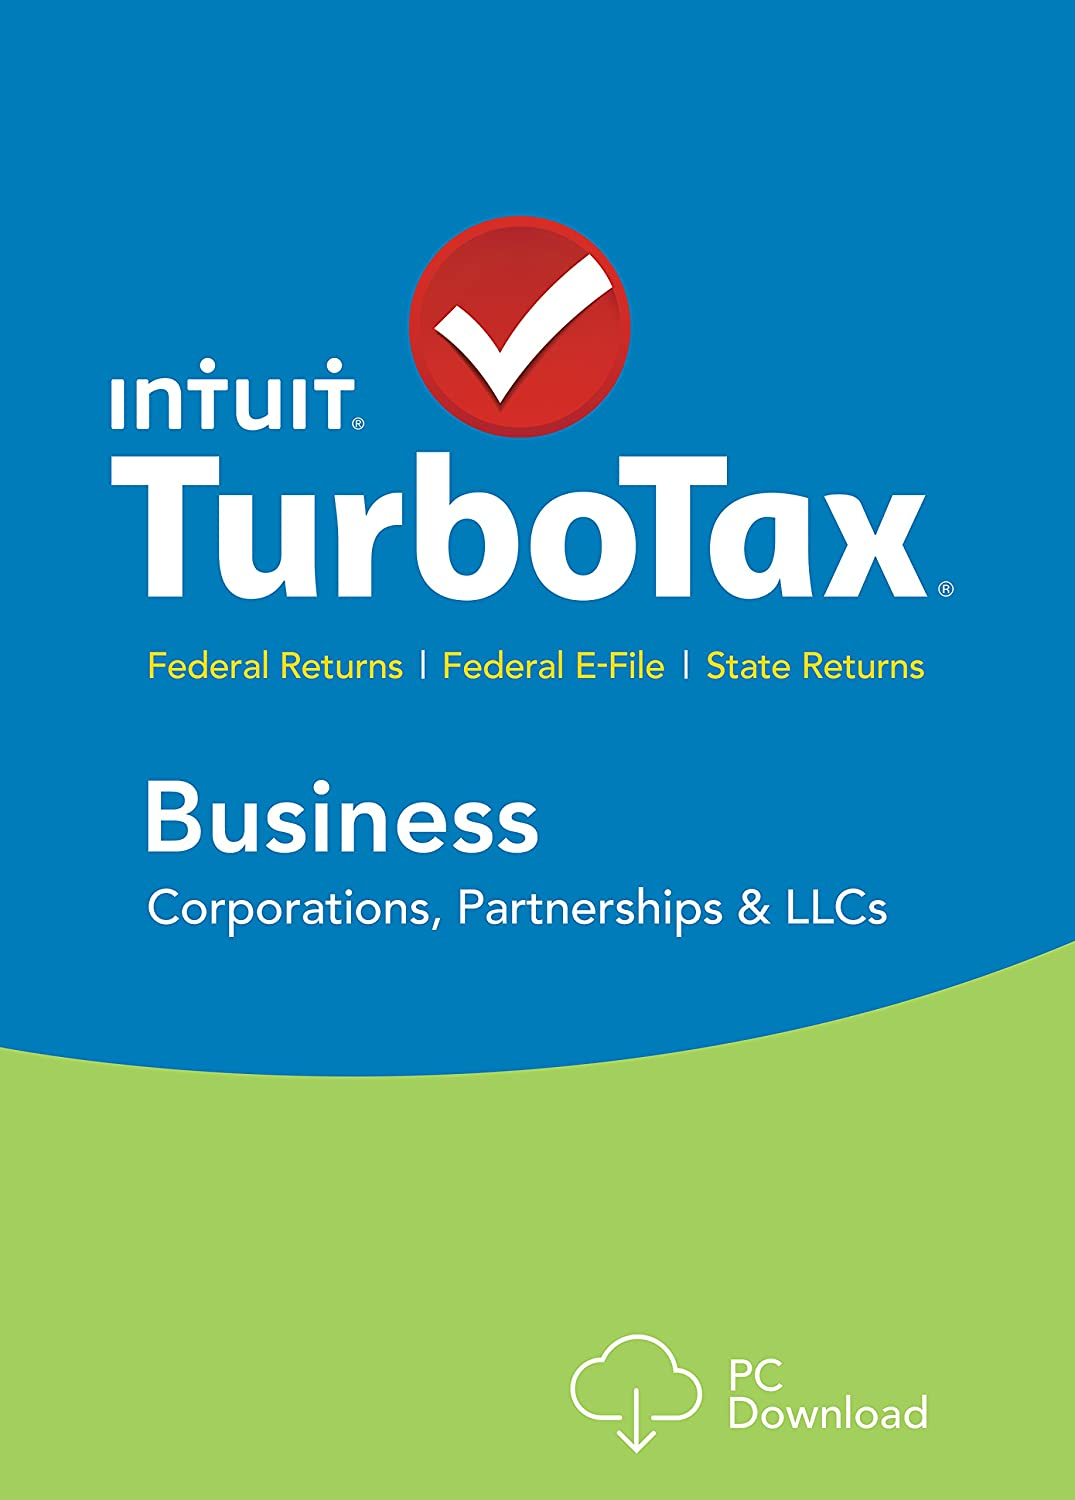 TurboTax Business 2015 Federal + Fed Efile Tax Preparation Software - PC Download